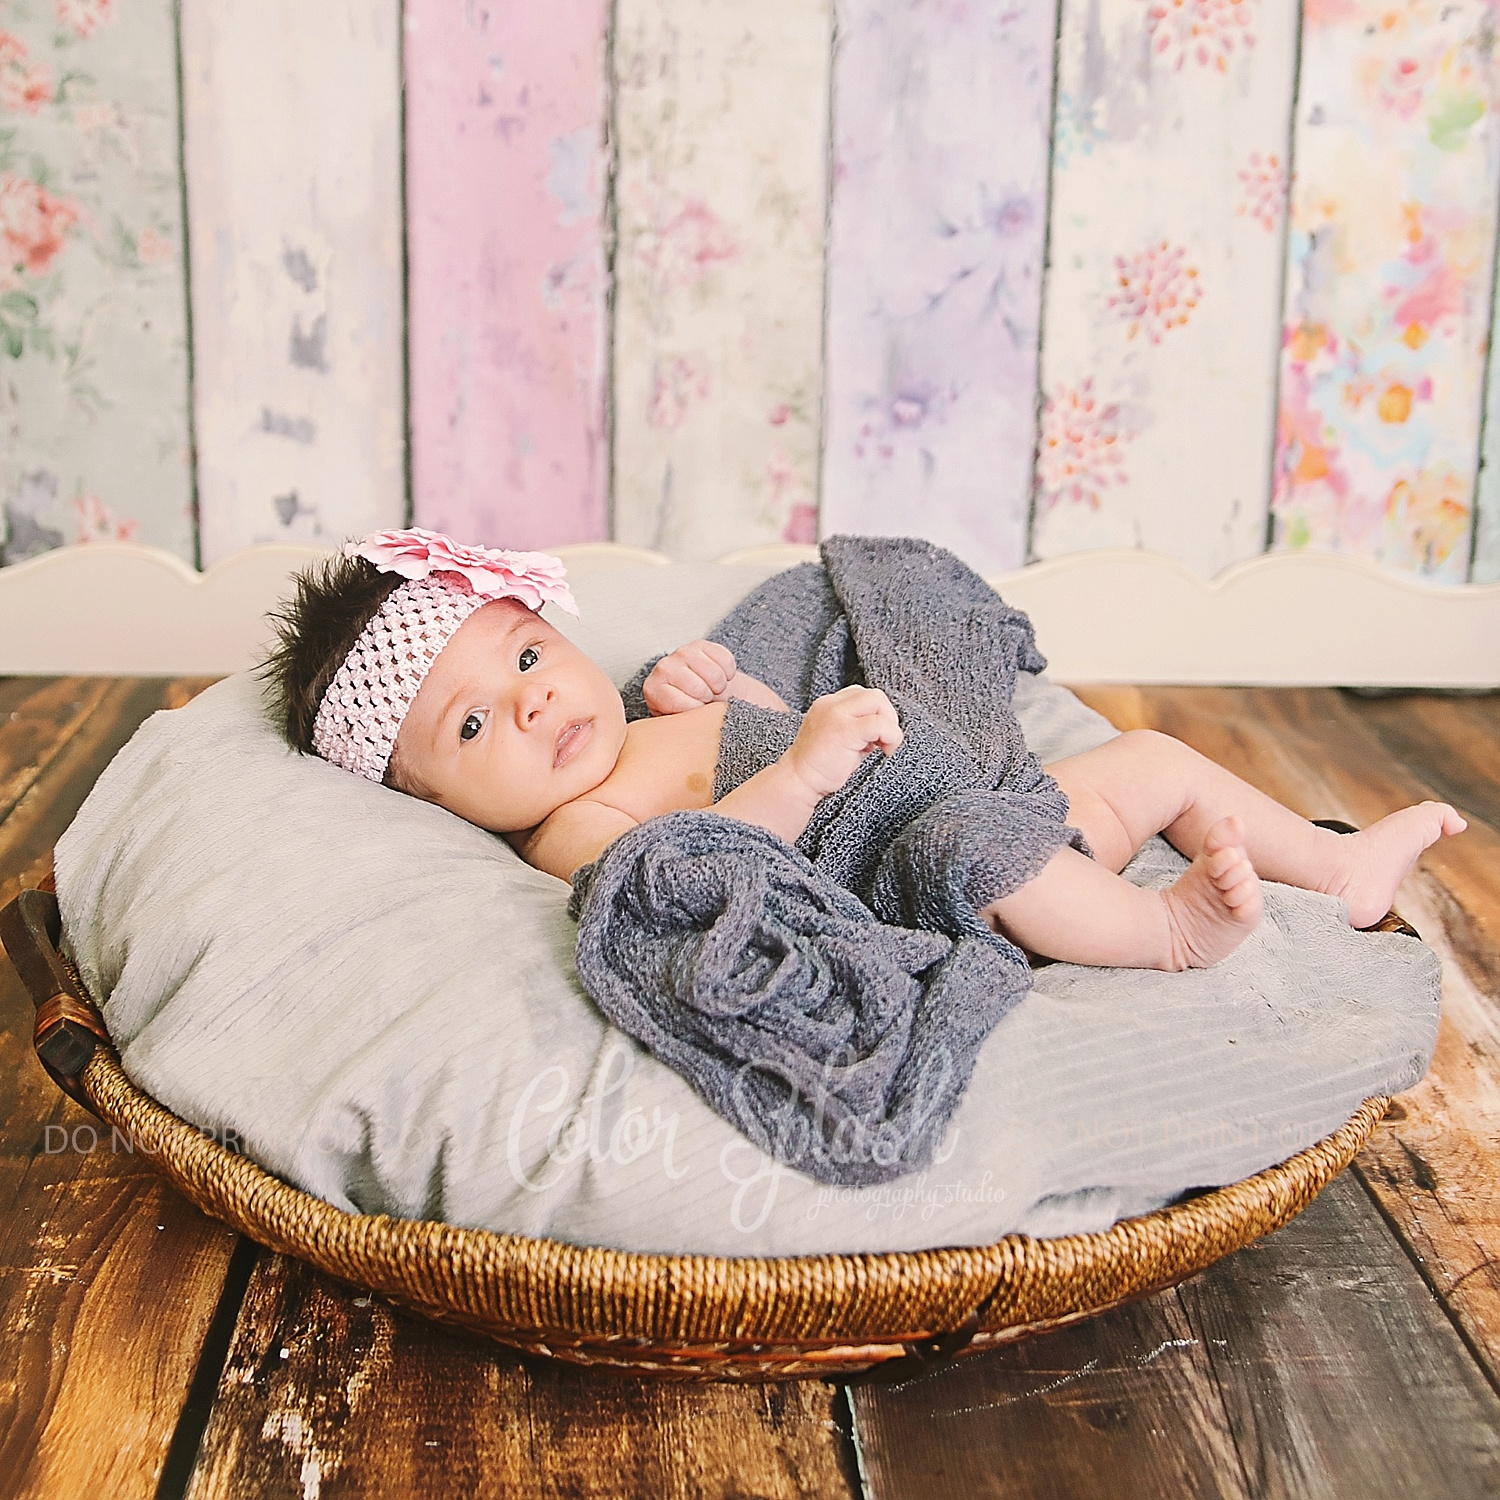 kalamazoo-mi-newborn-photographer_1166